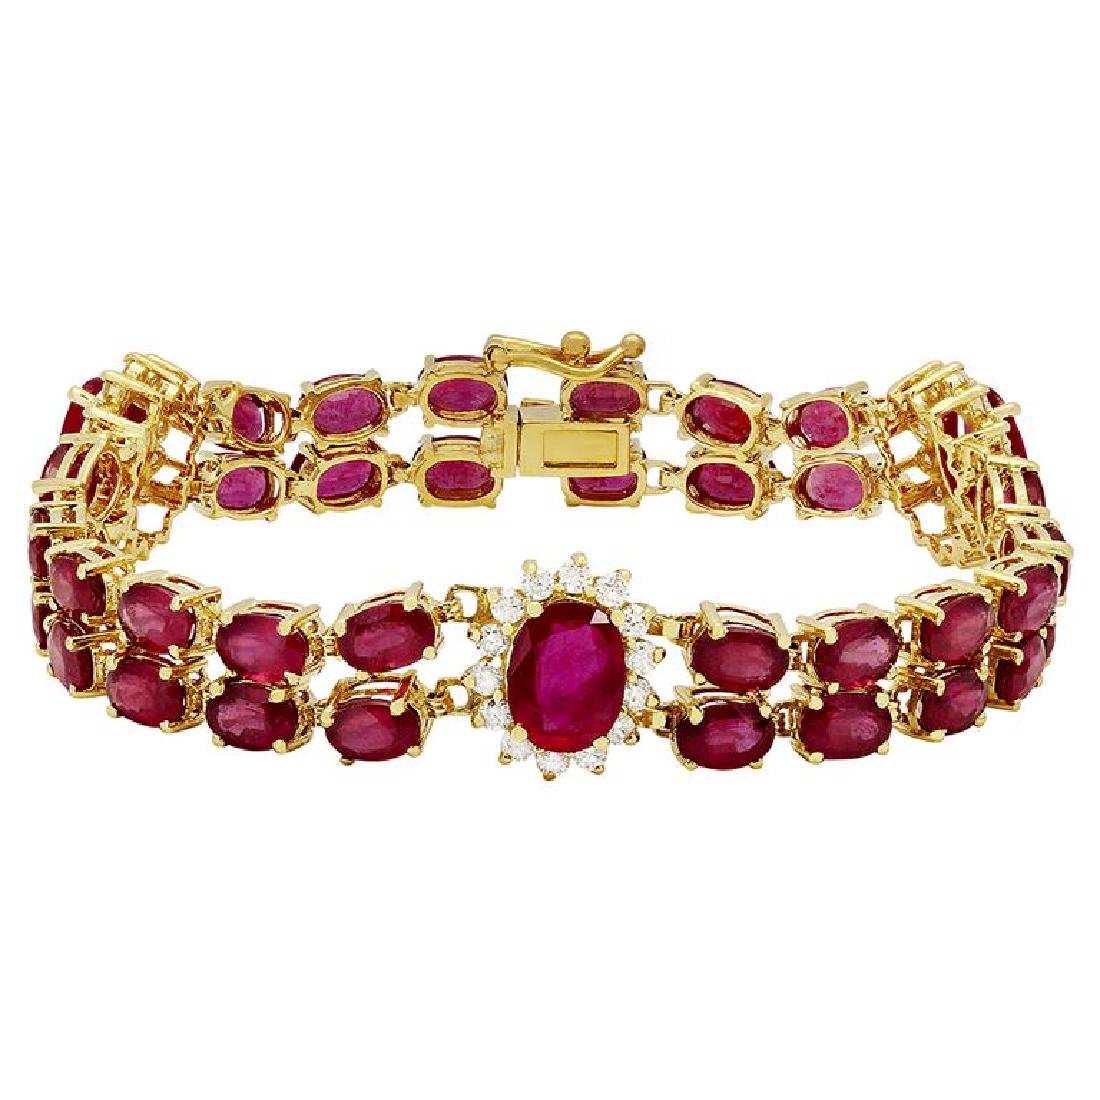 14k Yellow Gold 29.67ct Ruby 1.64ct Diamond Bracelet